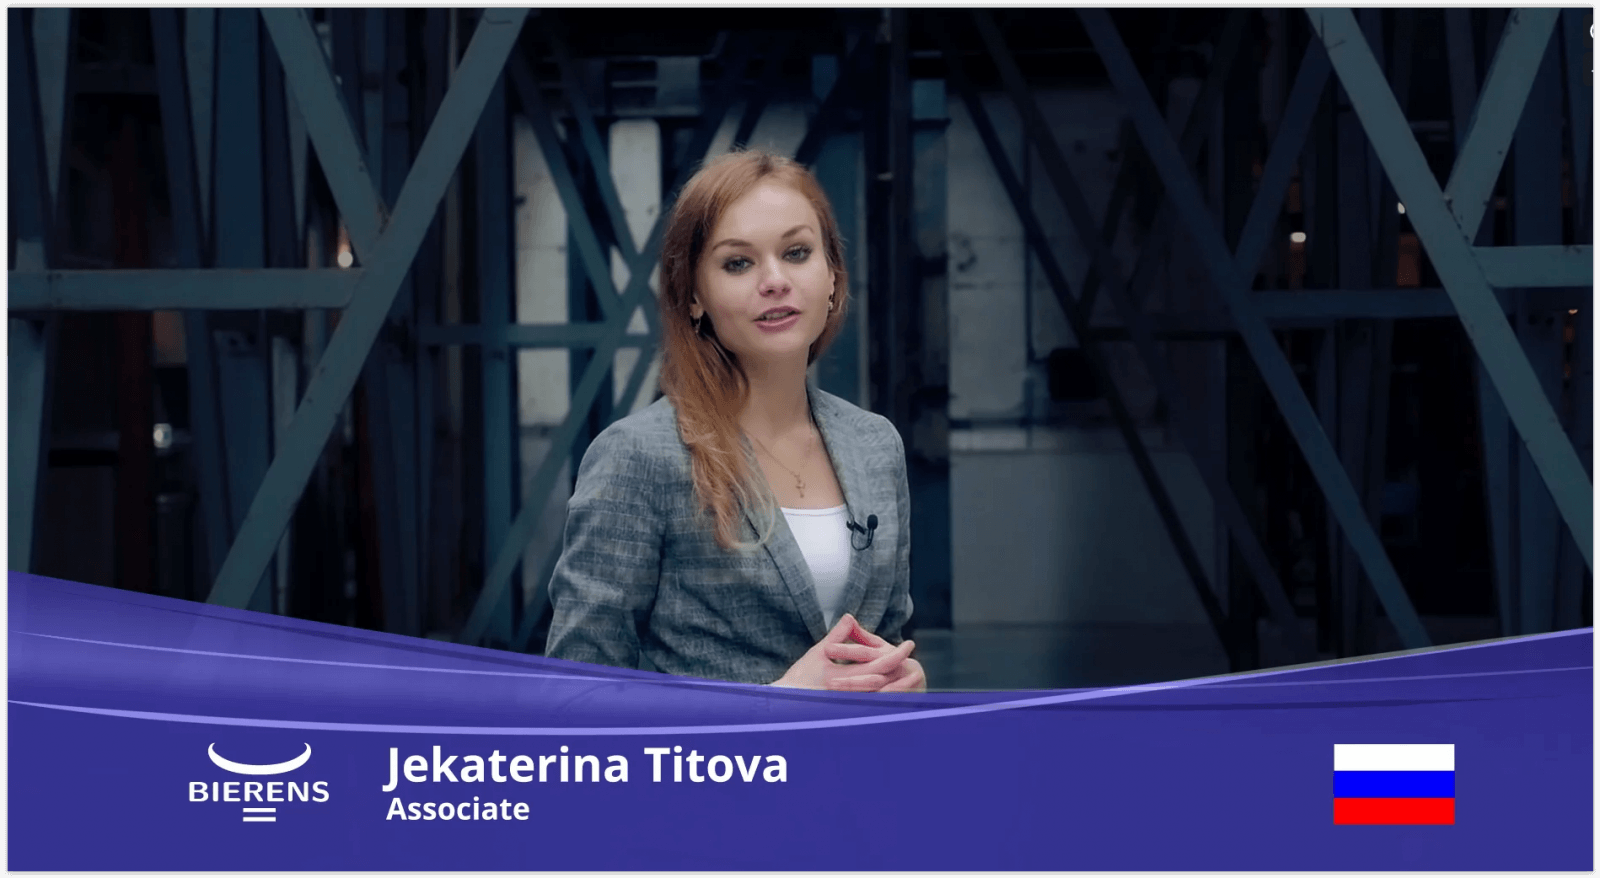 jekaterina-titova-video